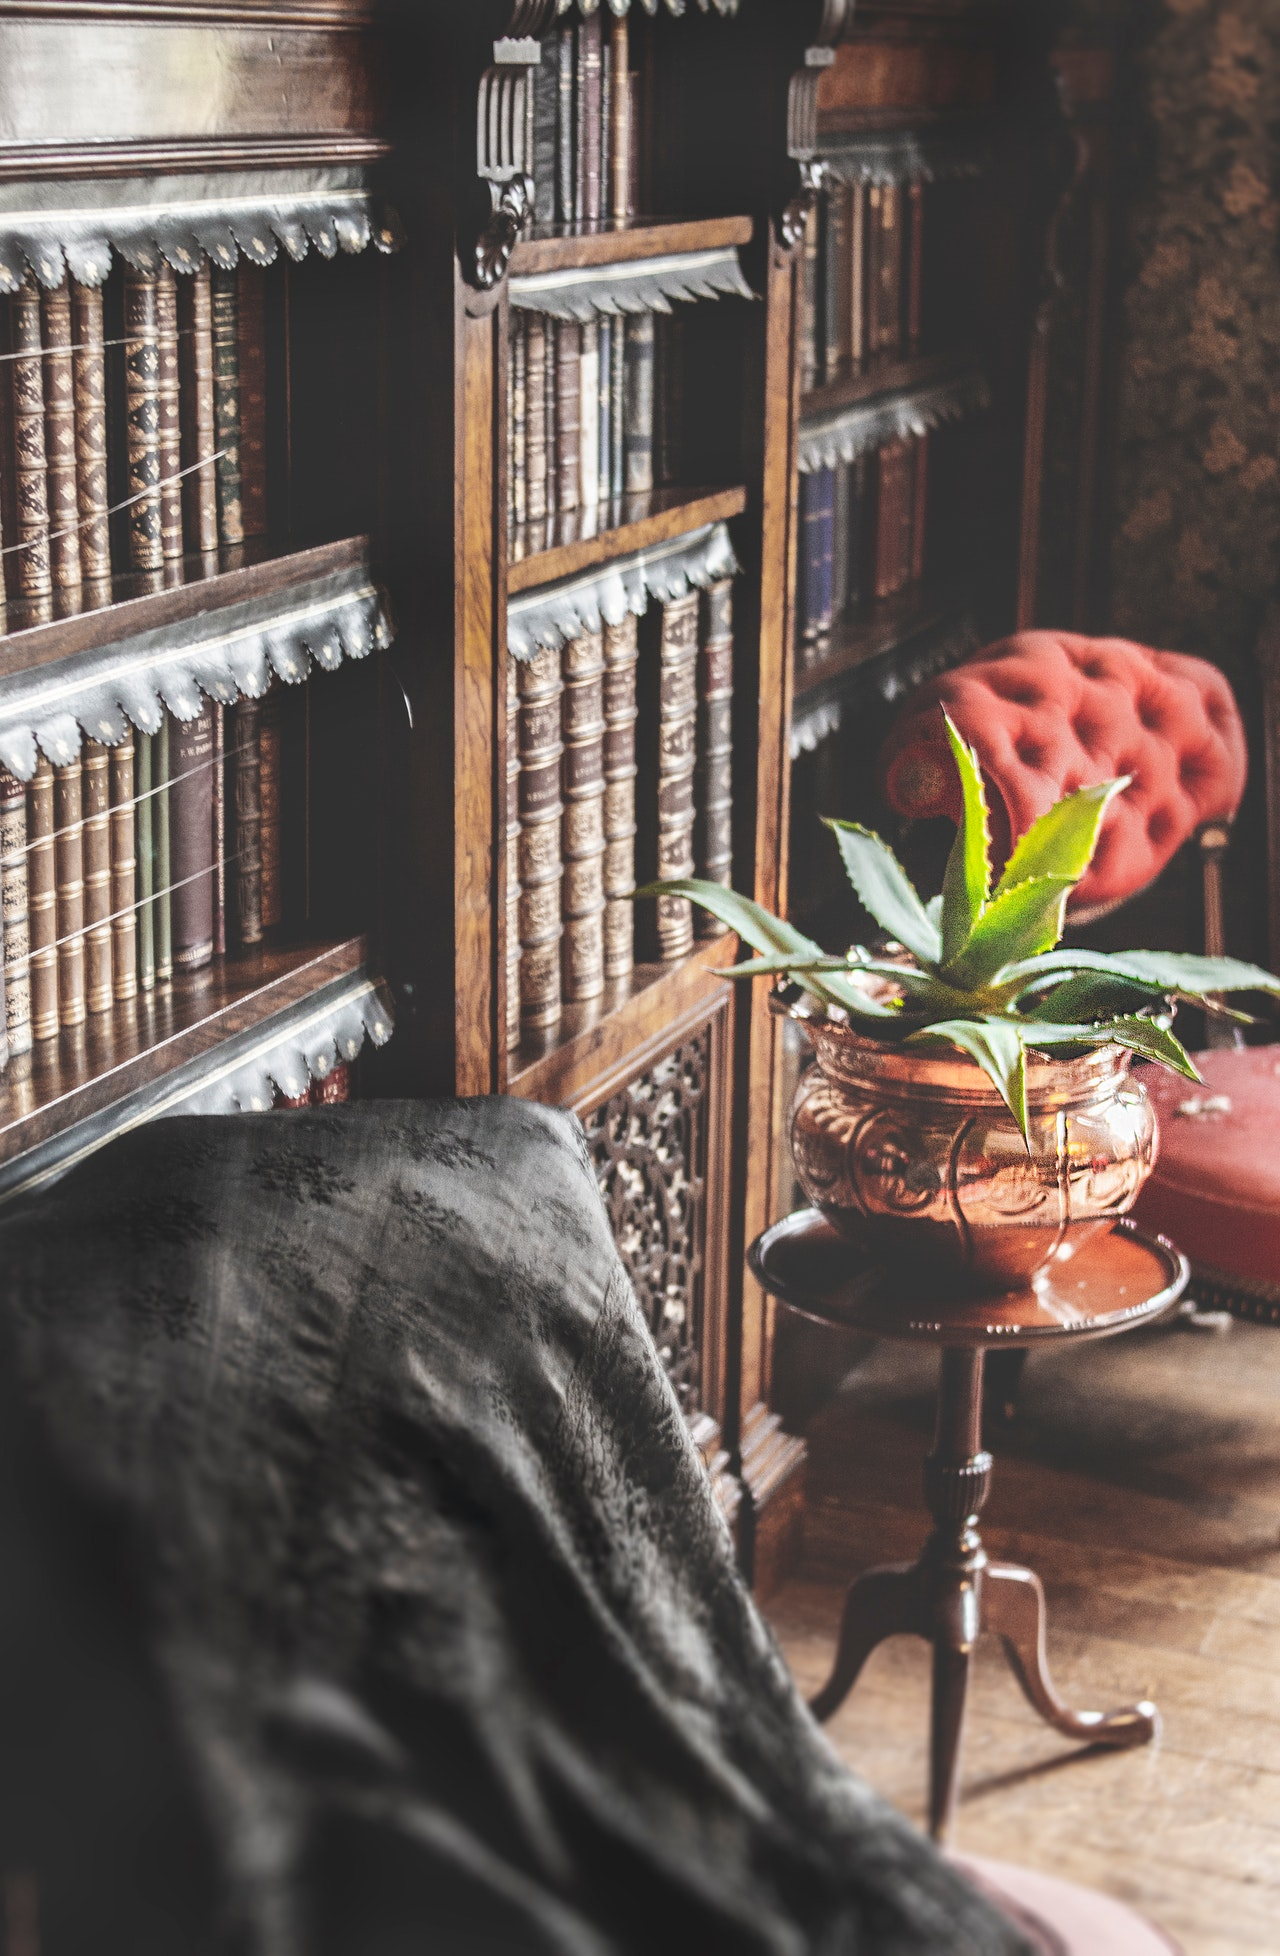 Home Library: Escape The World With The Collection Of Good Books